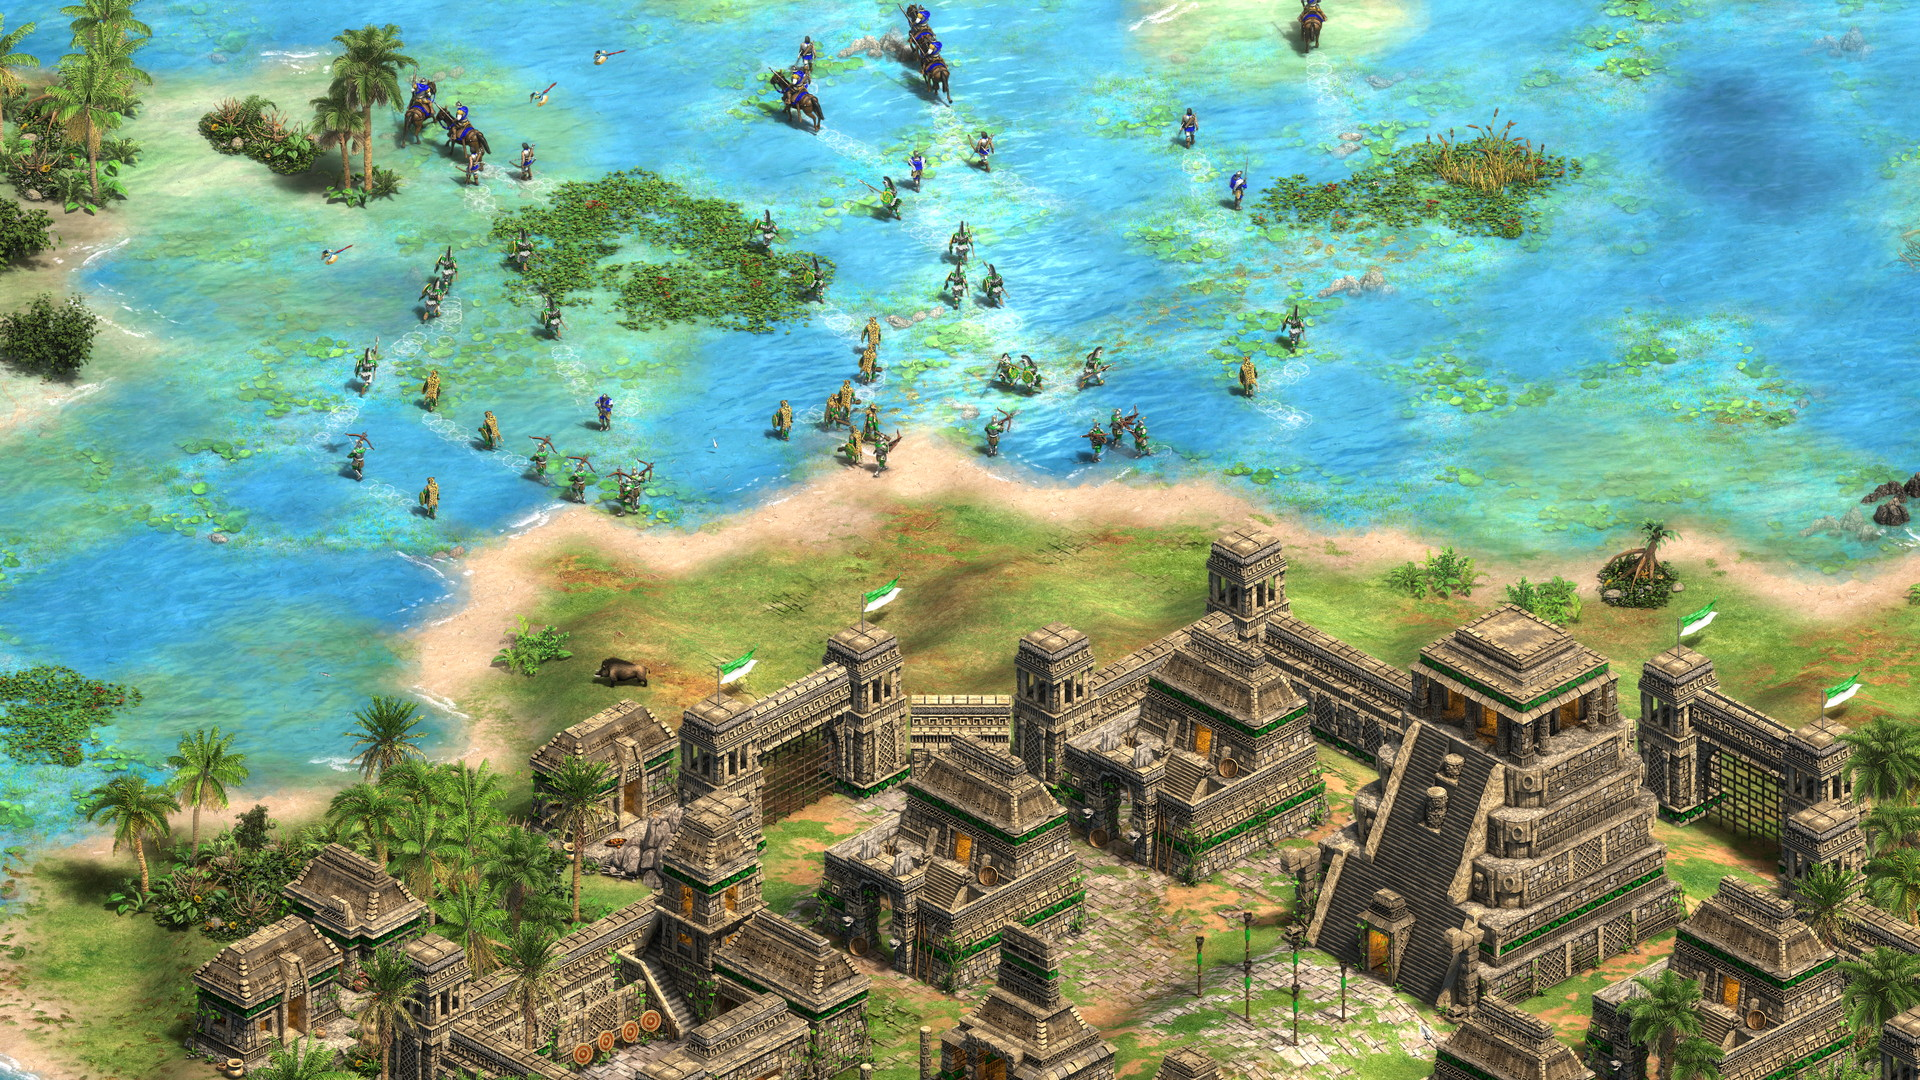 Age of Empires II: Definitive Edition - screenshot 3